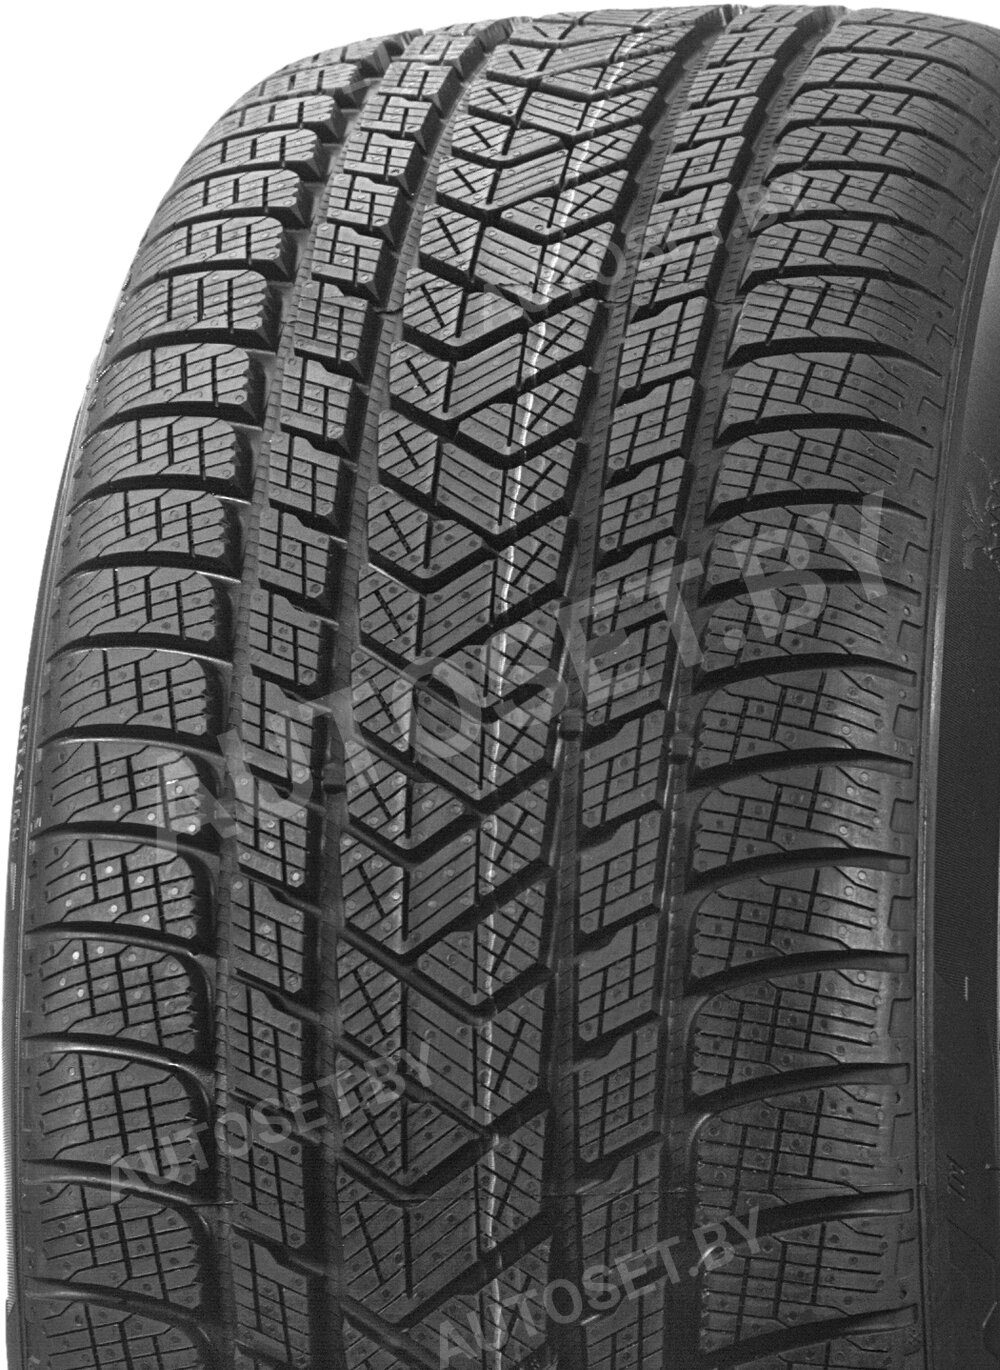 Зимняя шина PIRELLI Scorpion Winter – вид 1